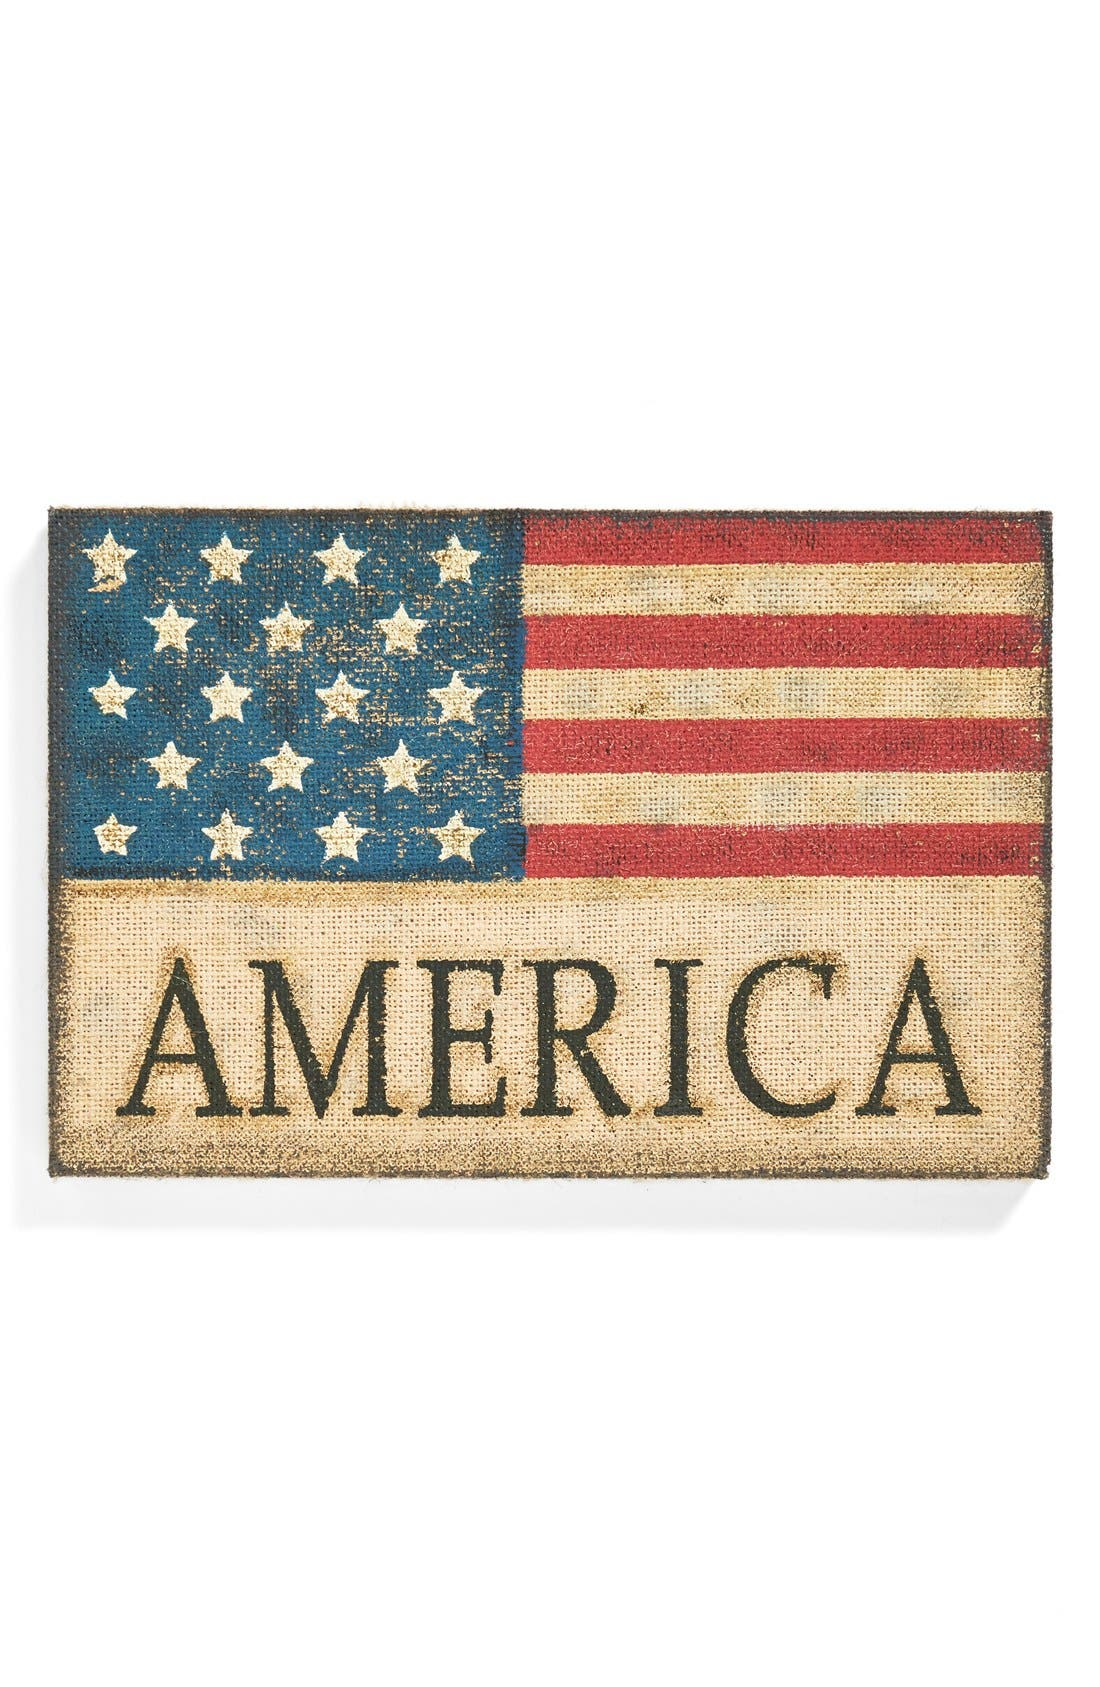 Main Image - Transpac 'Americana' Burlap Wall Sign